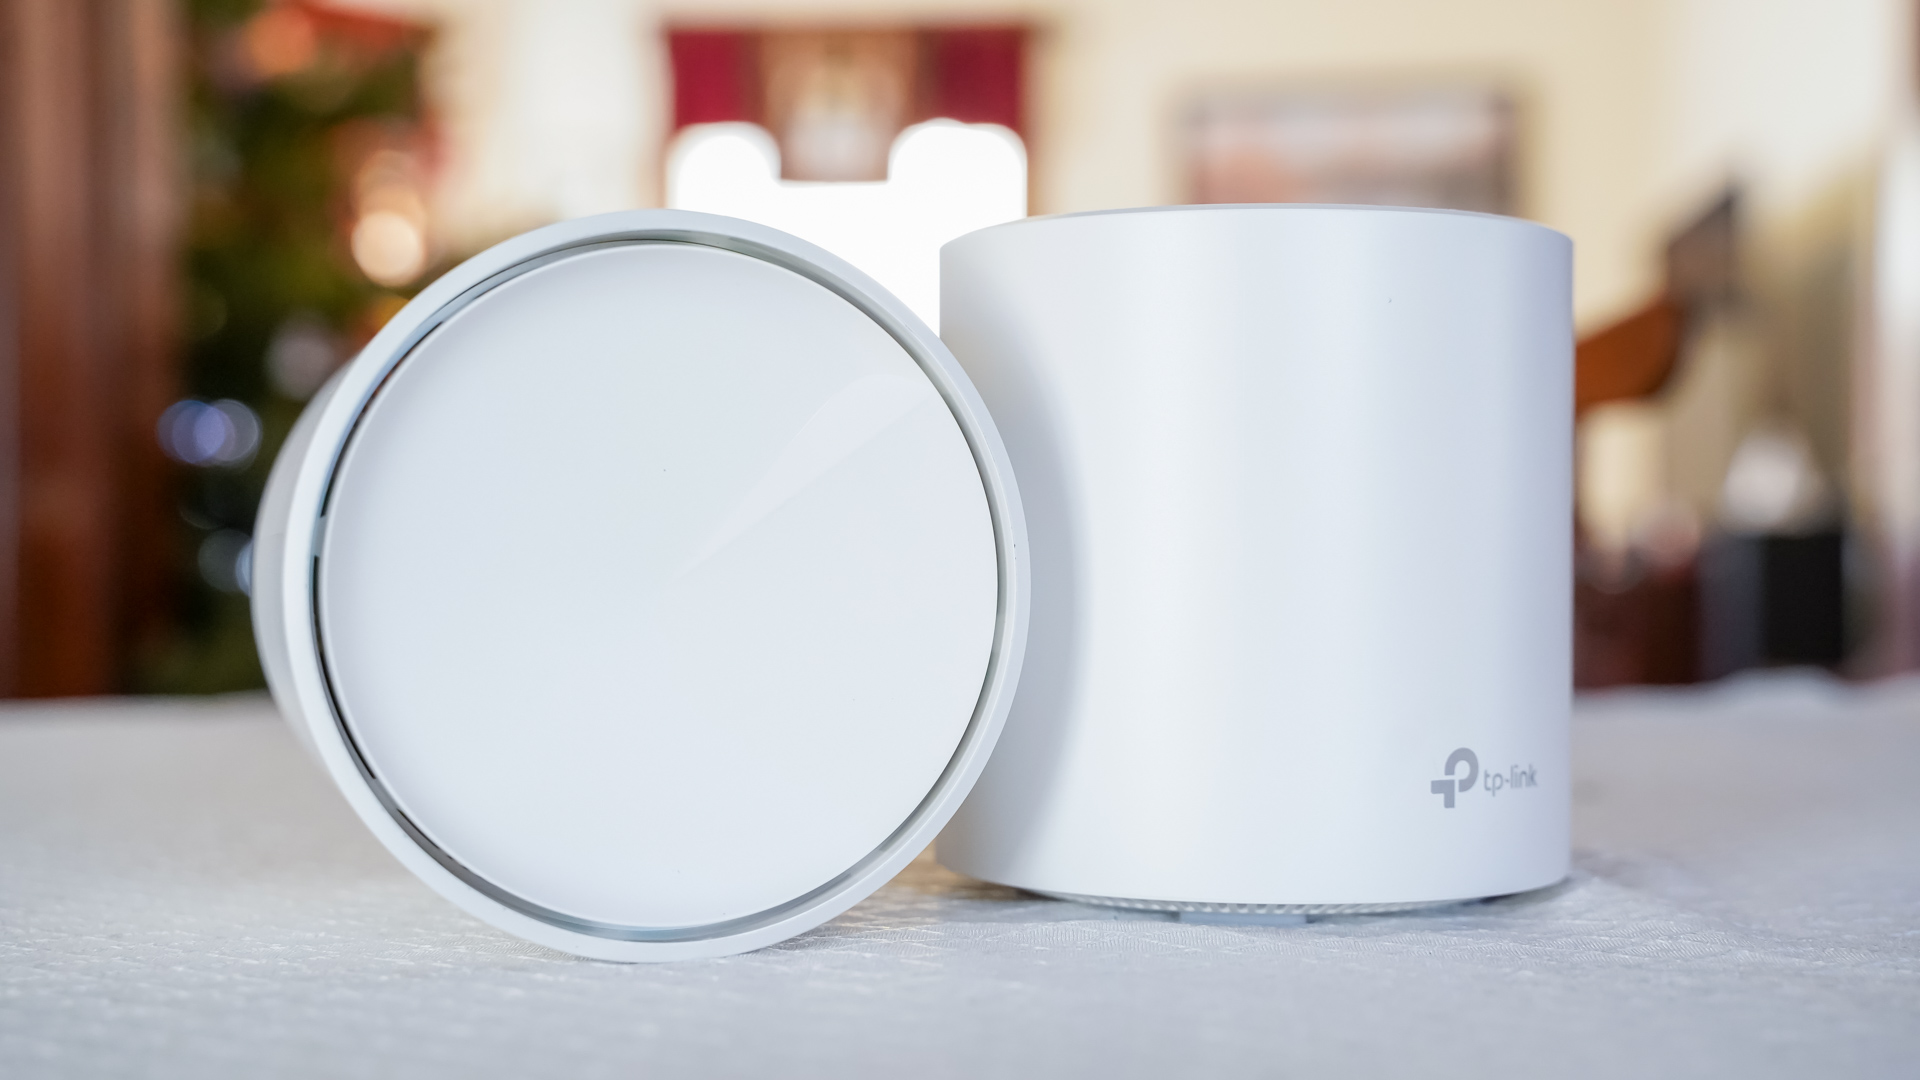 TP Link Deco X60 AX3000 Mesh WiFi System top side